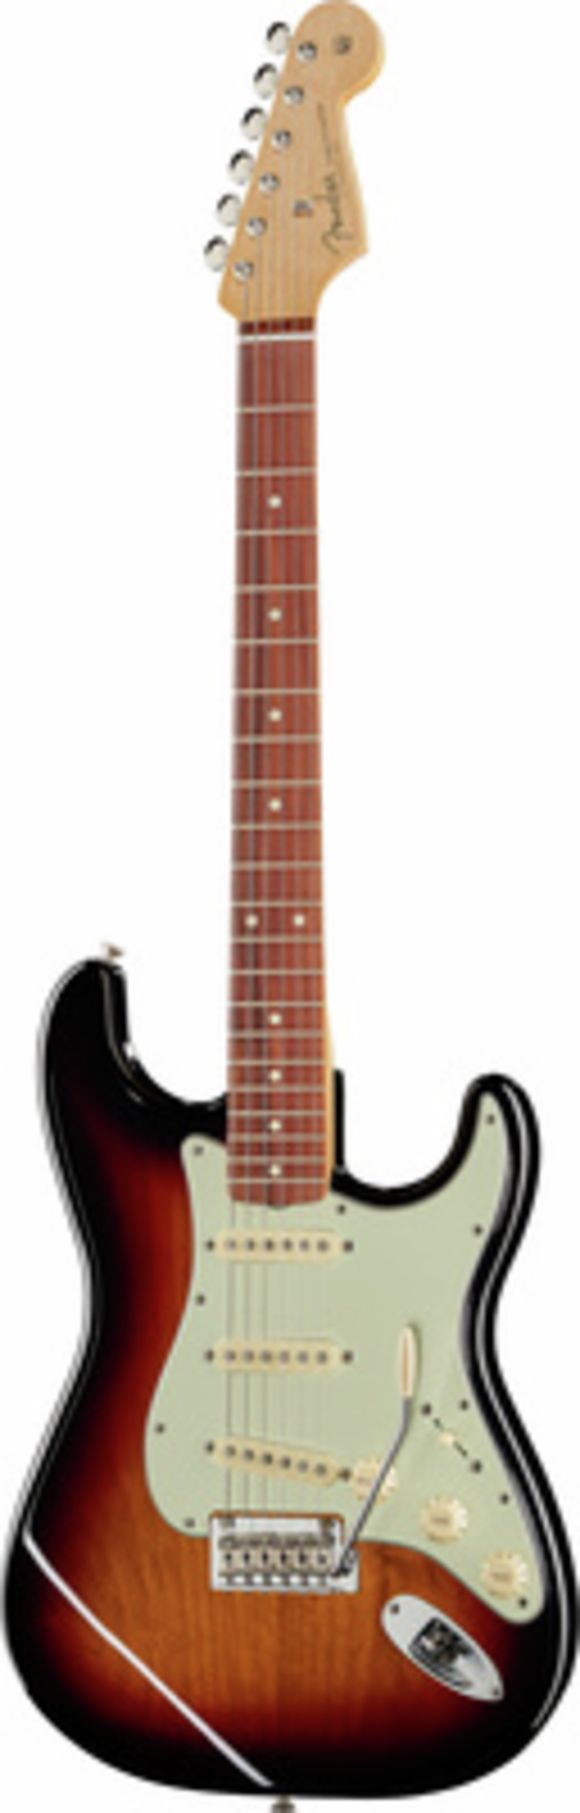 60s Classic Player Strat PF3SB Fender